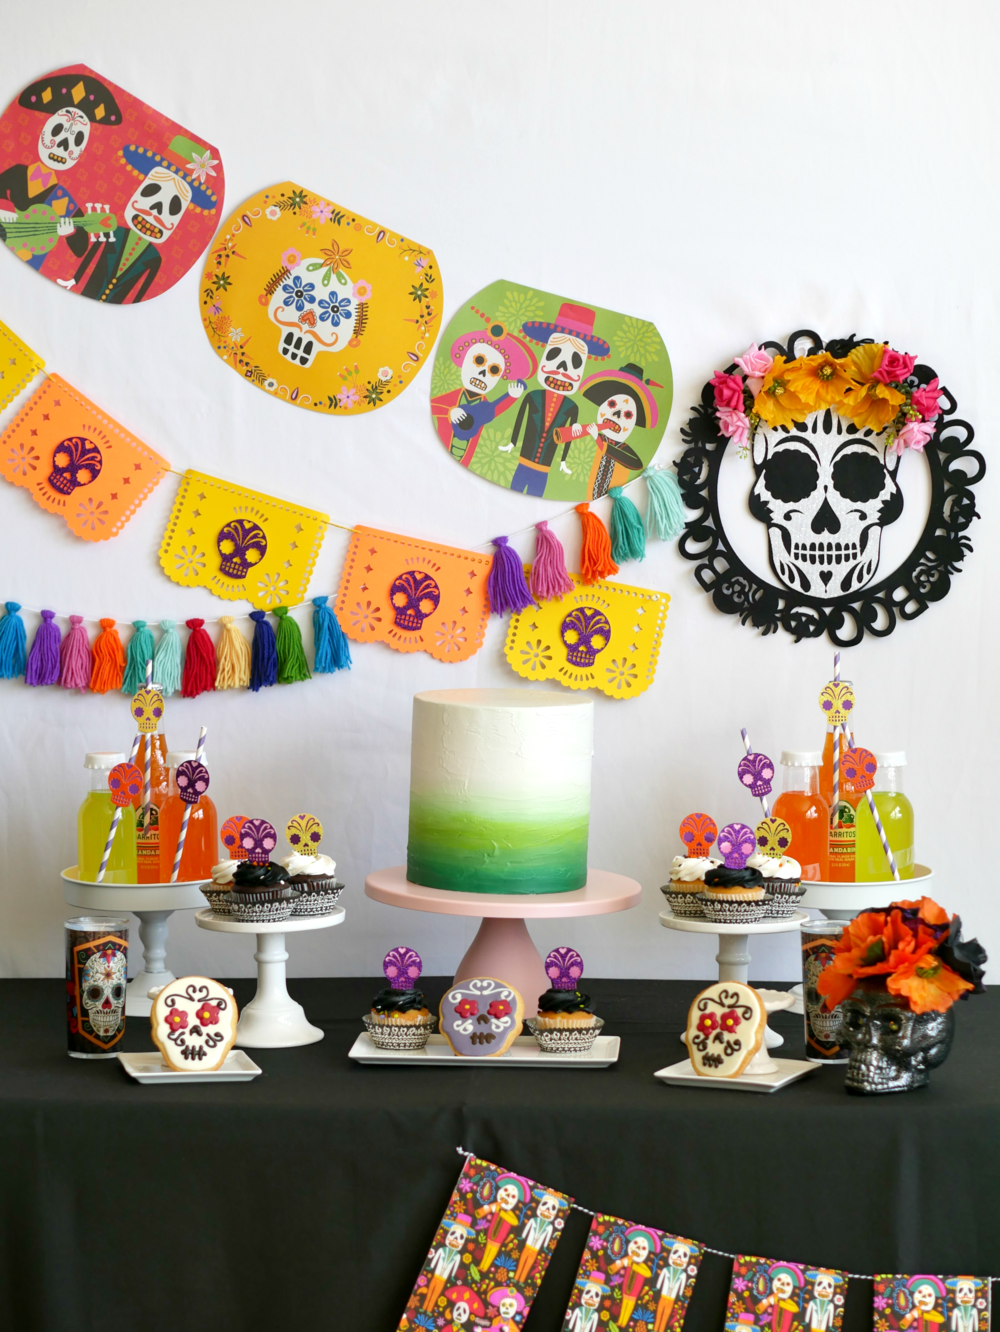 Let's celebrate Dia De Los Muertos with fringe garlands, sugar skulls, skeleton props and paper picado banners. Many more Day of the Dead party ideas for a dessert table on the Mint Event Design party blog from Austin, Texas based party stylist, Mint Event Design www.minteventdesign.com #dayofthedead #diadelosmuertos #sugarskulls #mexicanparty #halloweenparty #partyideas